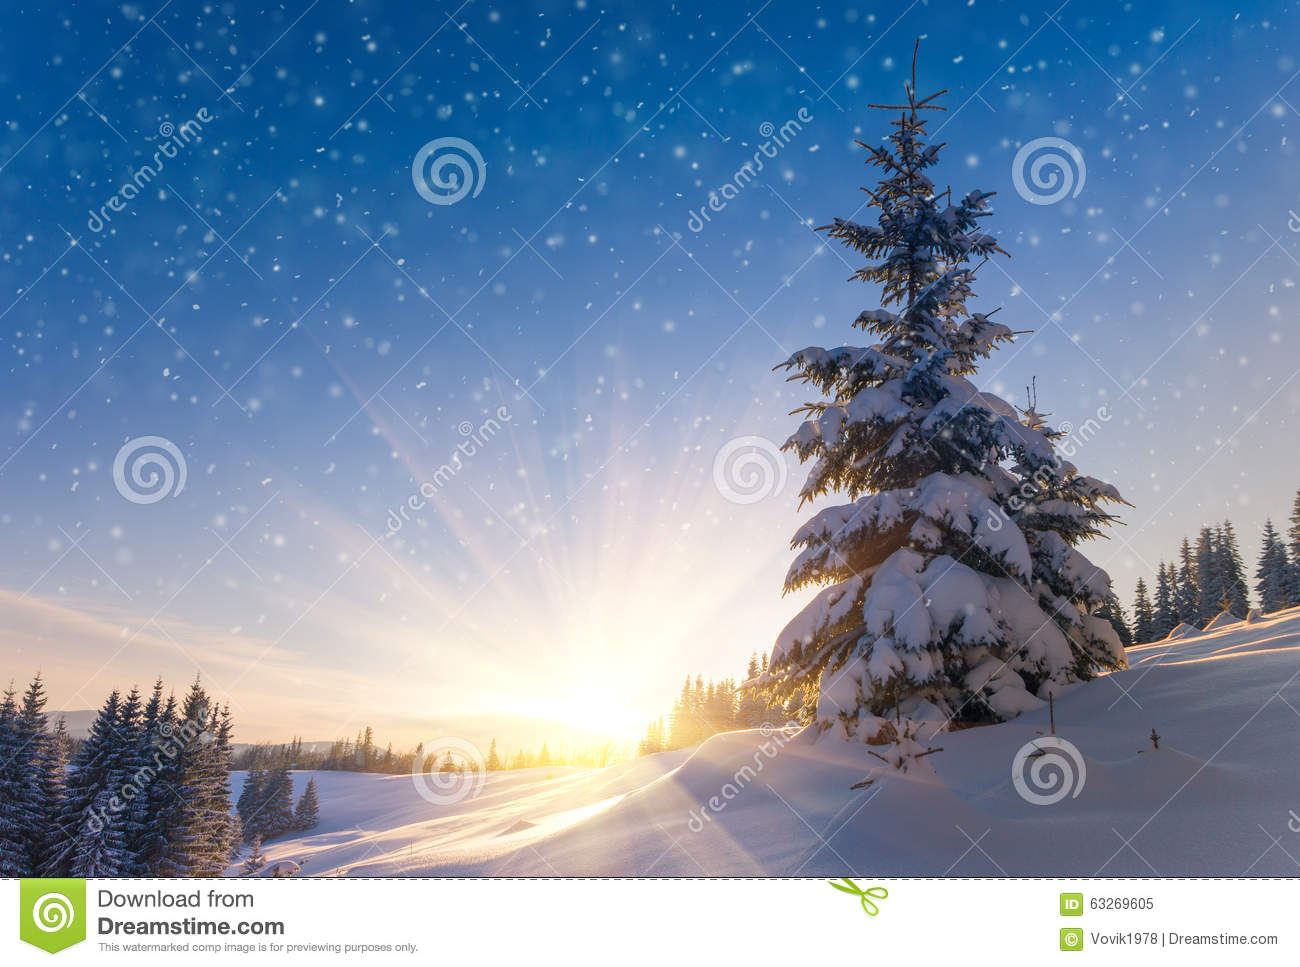 beautiful winter landscape in mountains view of snow covered conifer trees and snow flakes at sunrise merry christmass or new years background